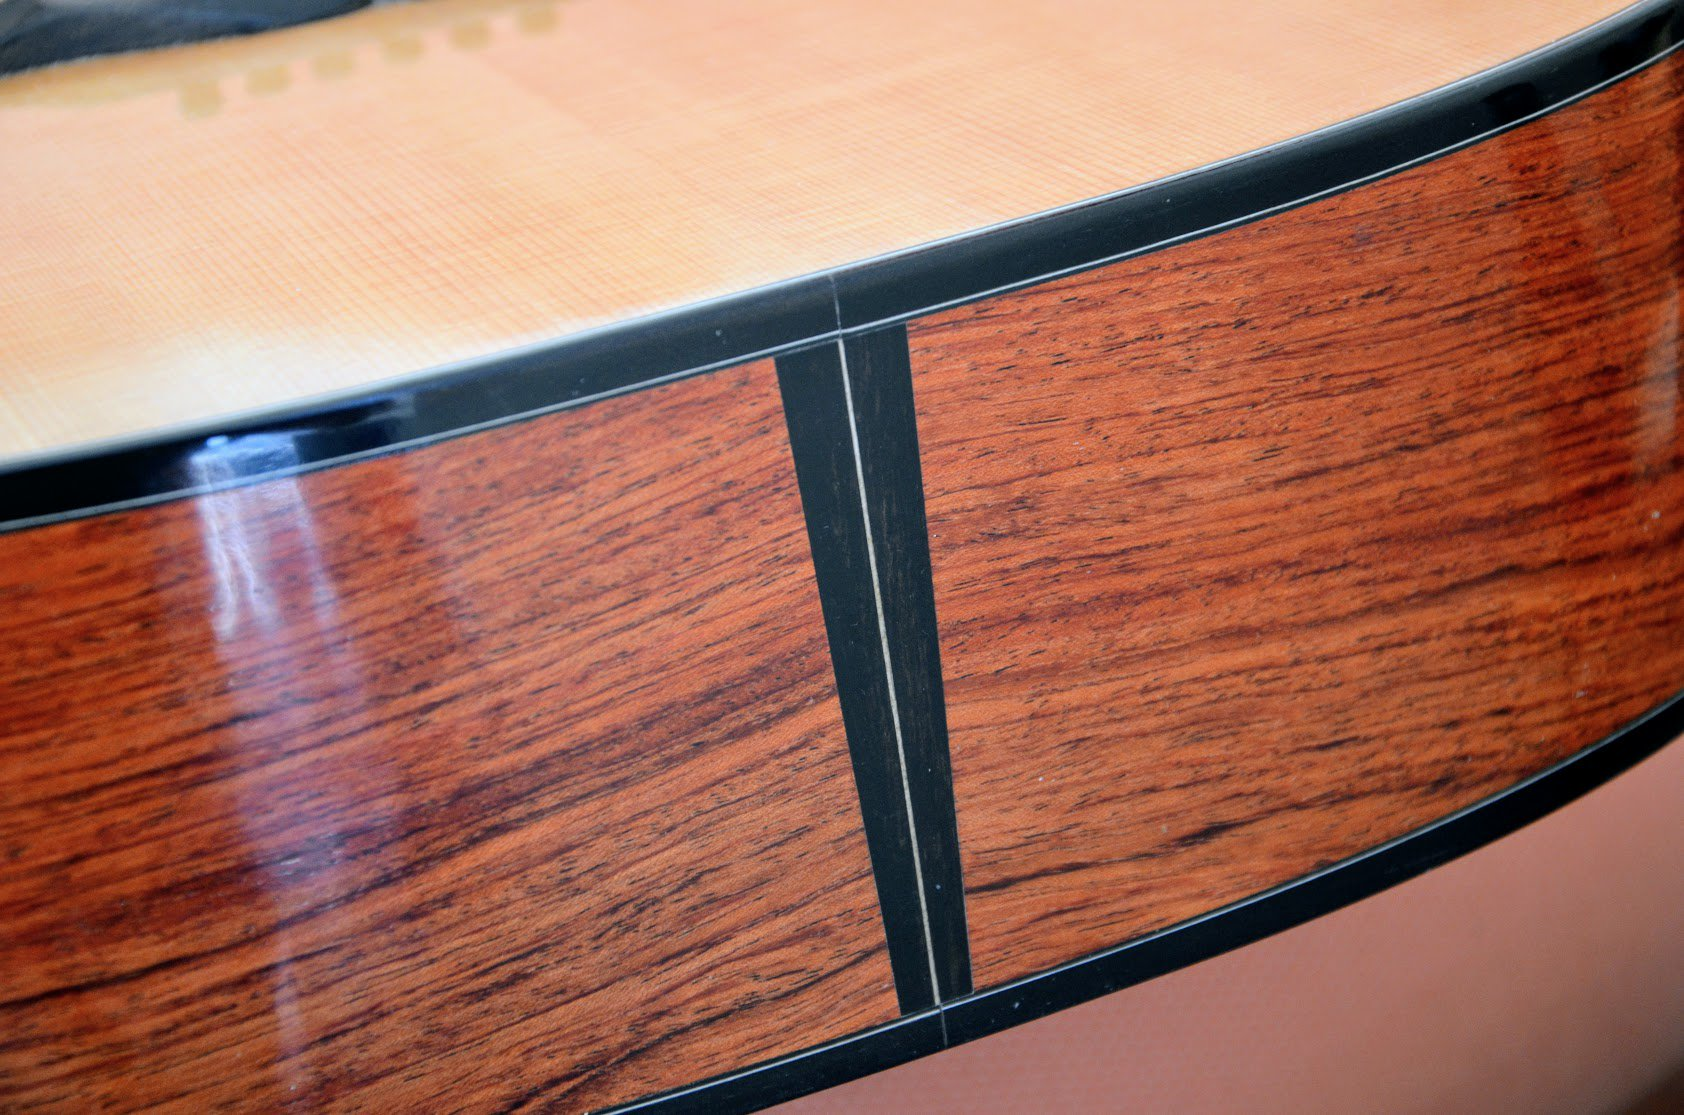 HVLP for spraying shellac and other finishes - Paul Sellers